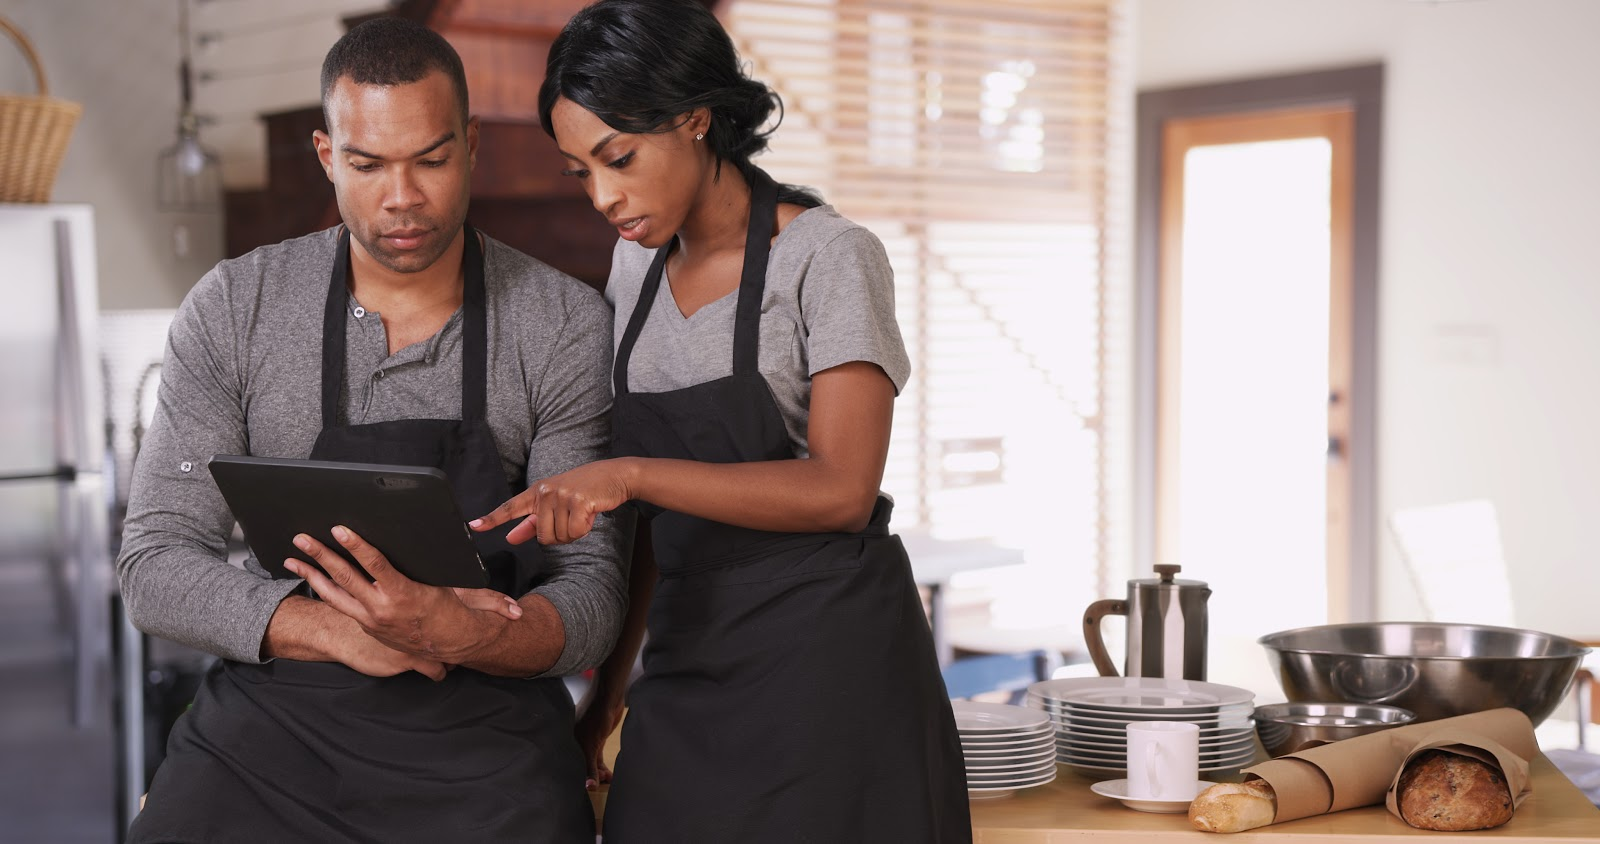 How to become a restaurant manager: Two servers look at tablet together